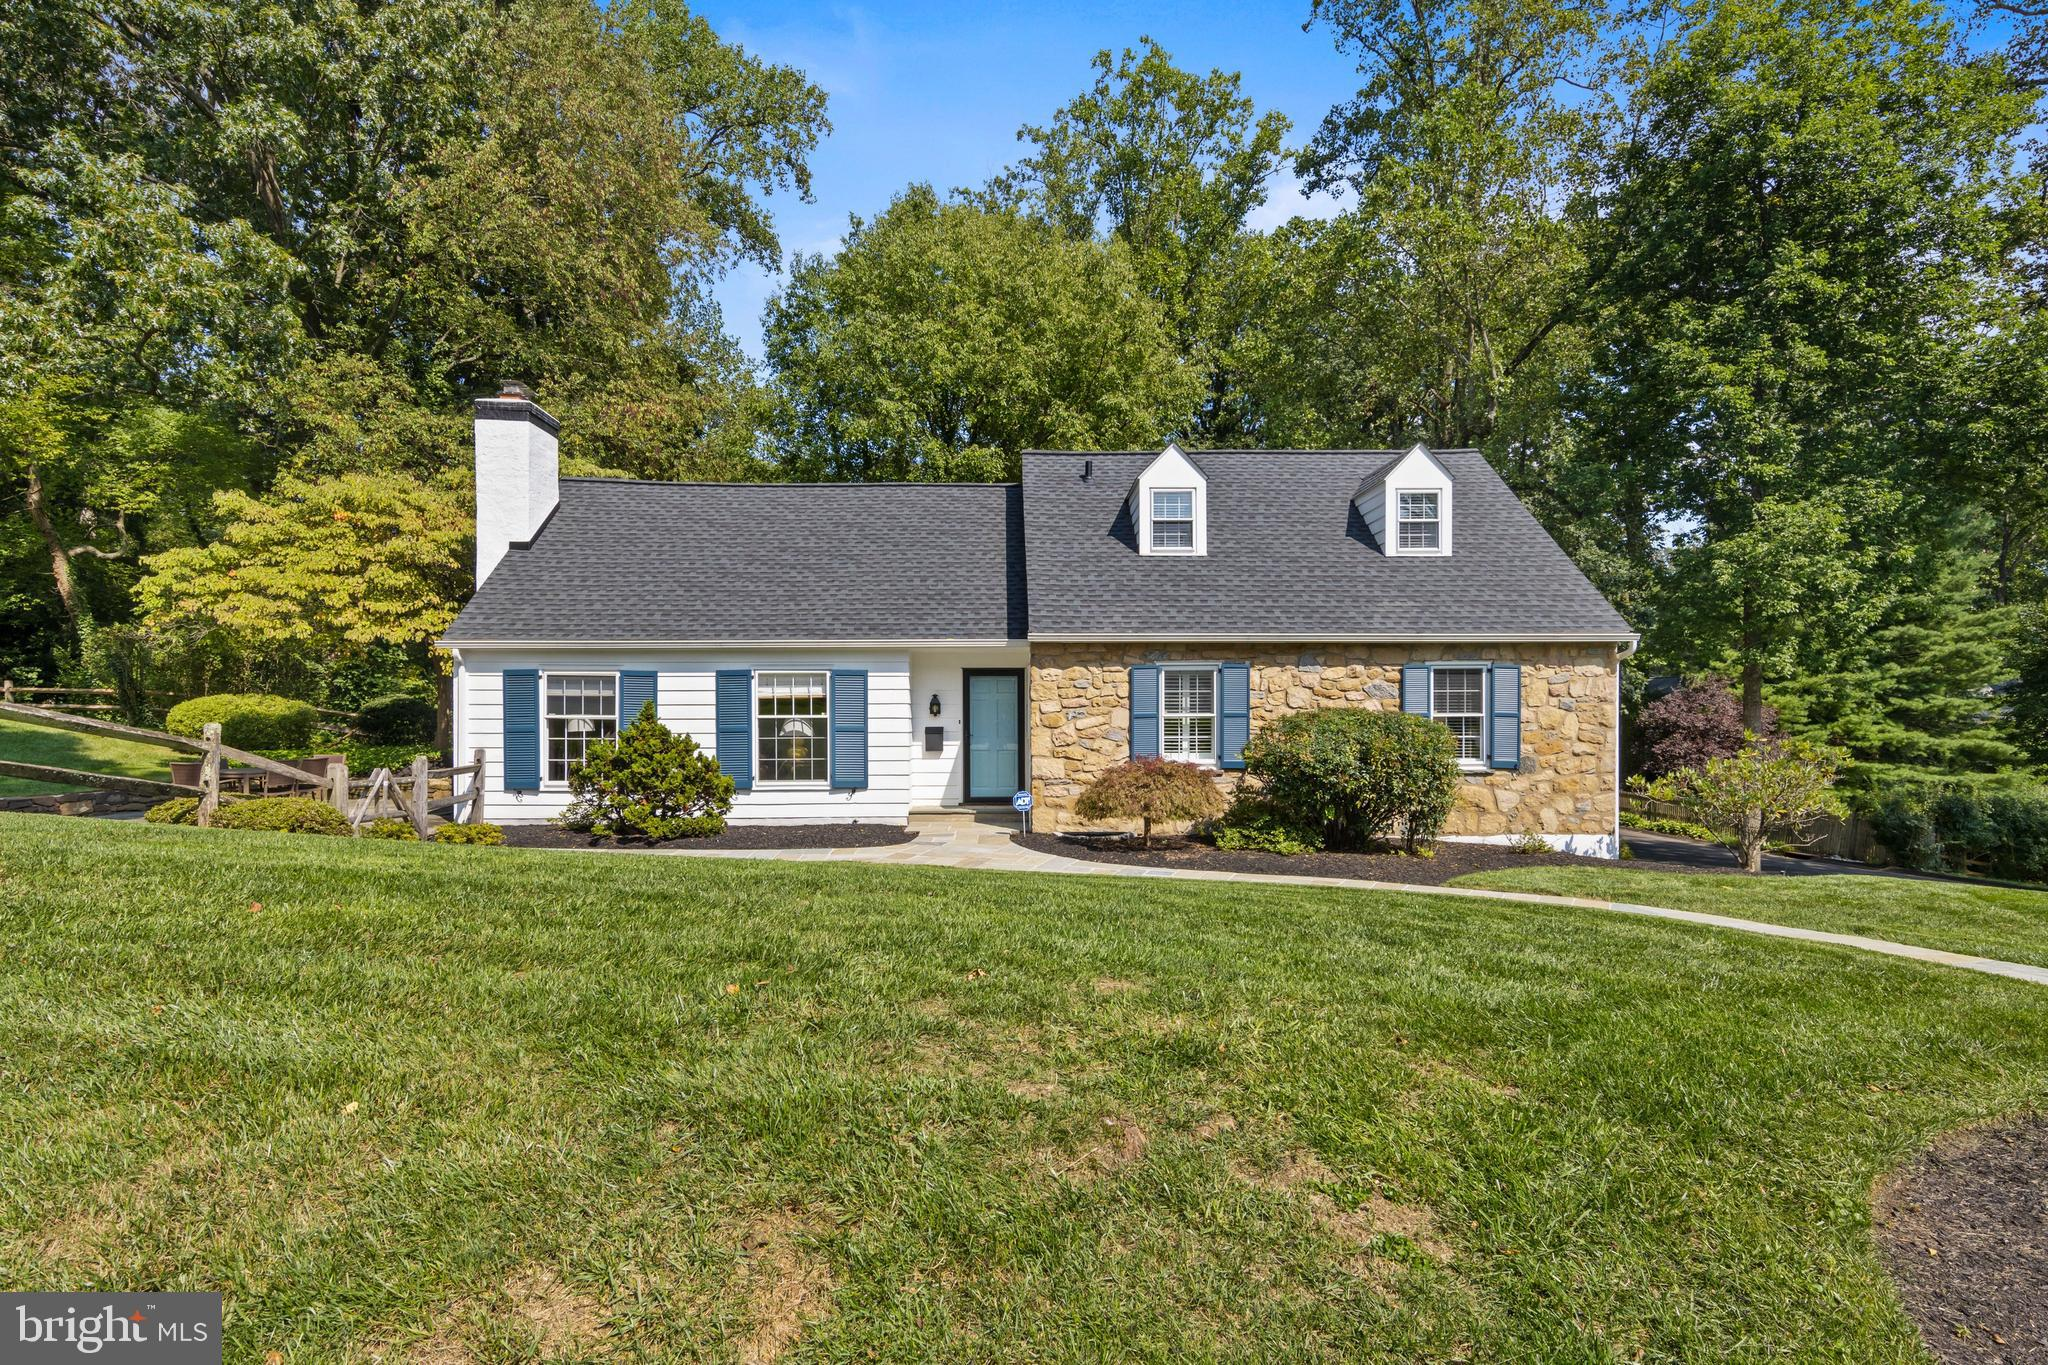 Don't miss this great home in sought-after Strafford Village! Fresh, neutral décor and many updates make this 3-4 BD, 2/1 BA stone Cape Cod colonial move-in ready. The bright and sunny Living Room features a fireplace and has open flow to a gracious Dining Room. The renovated Kitchen offers expansive counter space, custom cabinets, two sink areas, and breakfast bar seating. This home has a unique, flexible floor plan with potential for one floor living. On the 1st floor, Bedroom 1 has en suite access to the large, renovated Hall Bathroom and laundry area. Bedroom 2 is currently used as an exercise room, but could also be a Den, Office, or Master dressing room. Upstairs, Bedroom 3 is currently used as the primary bedroom and features a large walk-in closet. The spacious upstairs full Bathroom features a large furniture-style vanity, large tub, separate shower, and also serves Bedroom 4.  Both upstairs bedrooms are very large and have bonus under-eave storage closets. Relax and entertain on the large flagstone patio, overlooking the well-landscaped yard, with level grassy lawn for recreation. An add'l 440 sq. ft. of finished living space is found in the Lower Level, which has a Mudroom, Powder Room, Family Room, and a Bonus Room, ideal for exercise gear or home office. Two unfinished basement storage/utility rooms plus an oversized, freshly painted 2-car garage provide ample storage. Great location in award-winning Tredyffrin-Easttown School District. Wonderful neighborhood with events throughout the year that foster a strong sense of community, including holiday parties, dinners, and 4th of July parade and picnic. Enjoy live music and dining at the wide variety of restaurants in the charming village of Wayne, and shopping at the Strafford Farmers Market and DiBruno Brothers. Conveniently located just a short stroll from Strafford train station, parks, playground, library, and public transportation with easy access to Center City, Airport, and corporate centers.